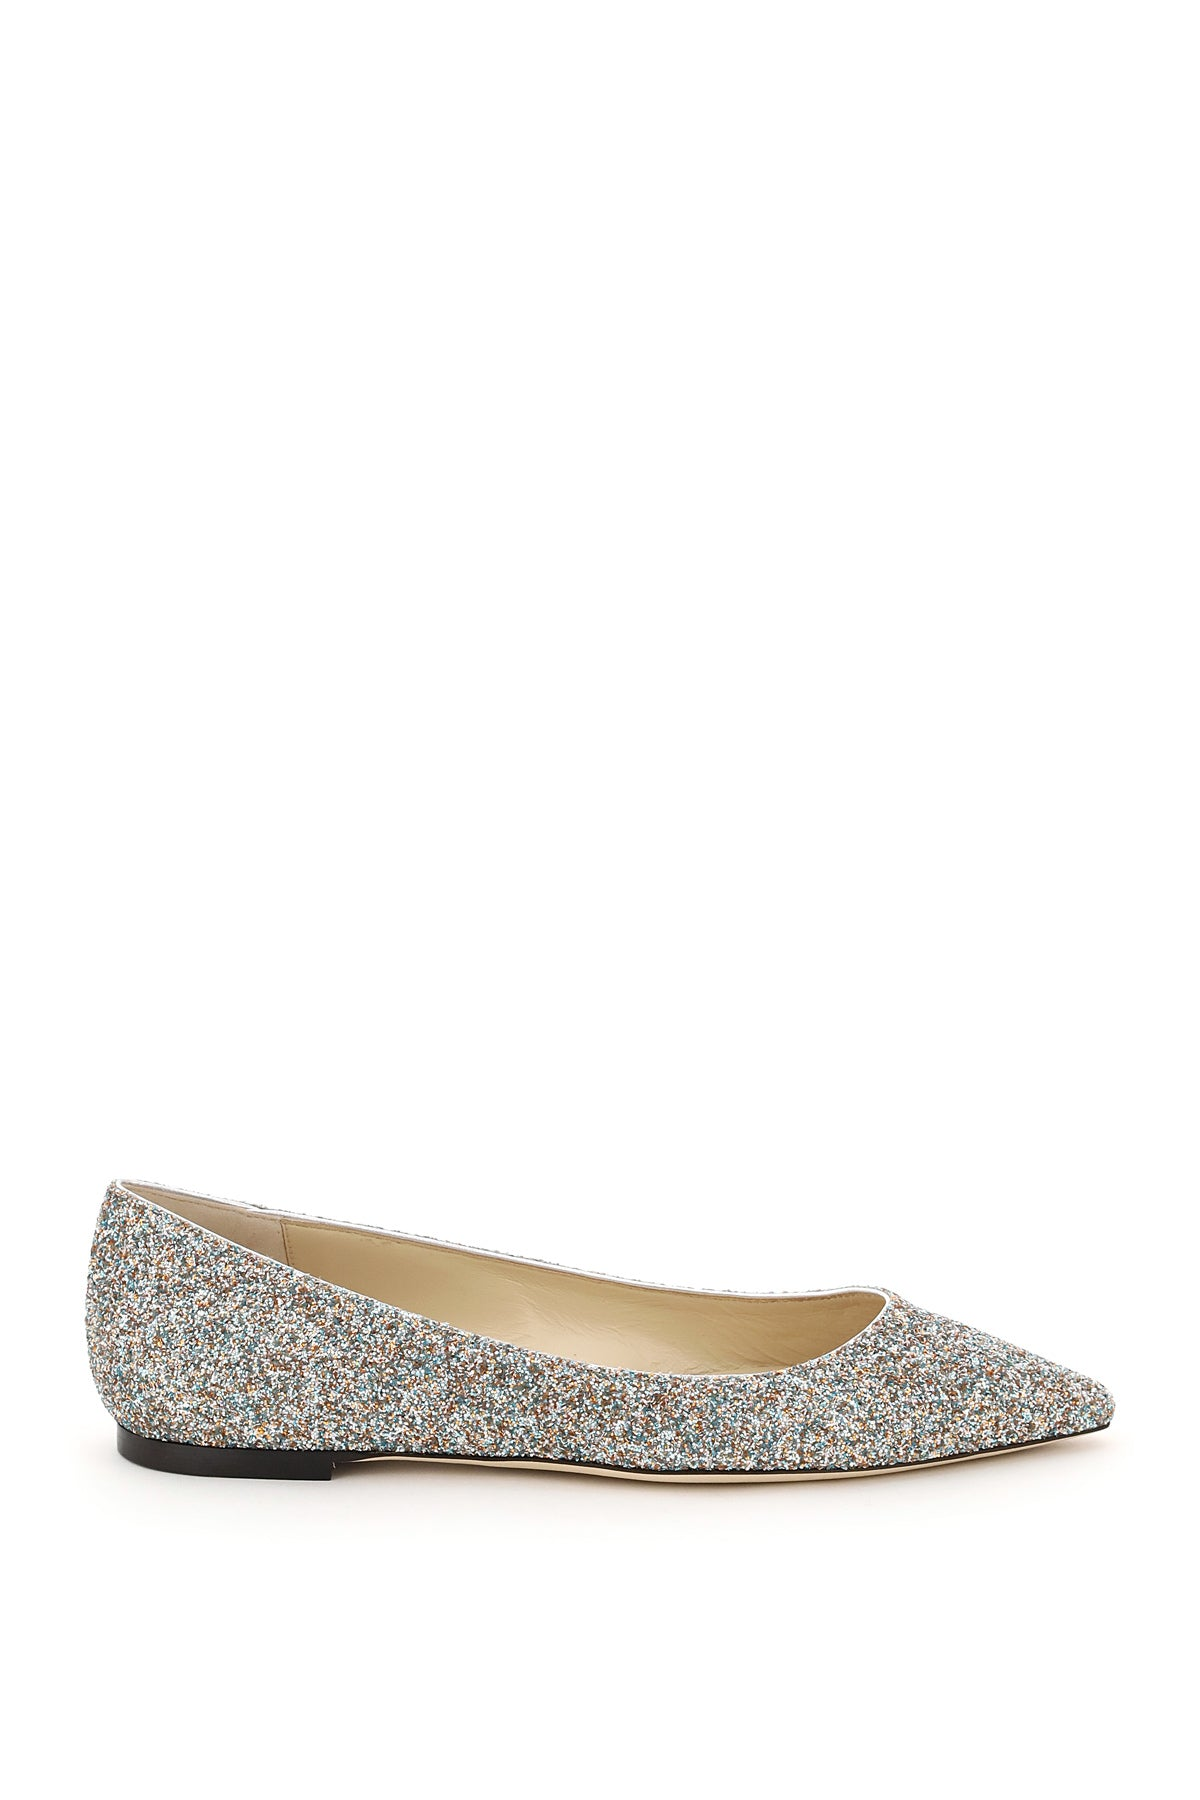 Jimmy Choo JIMMY CHOO ROMY GLITTERED FLATS